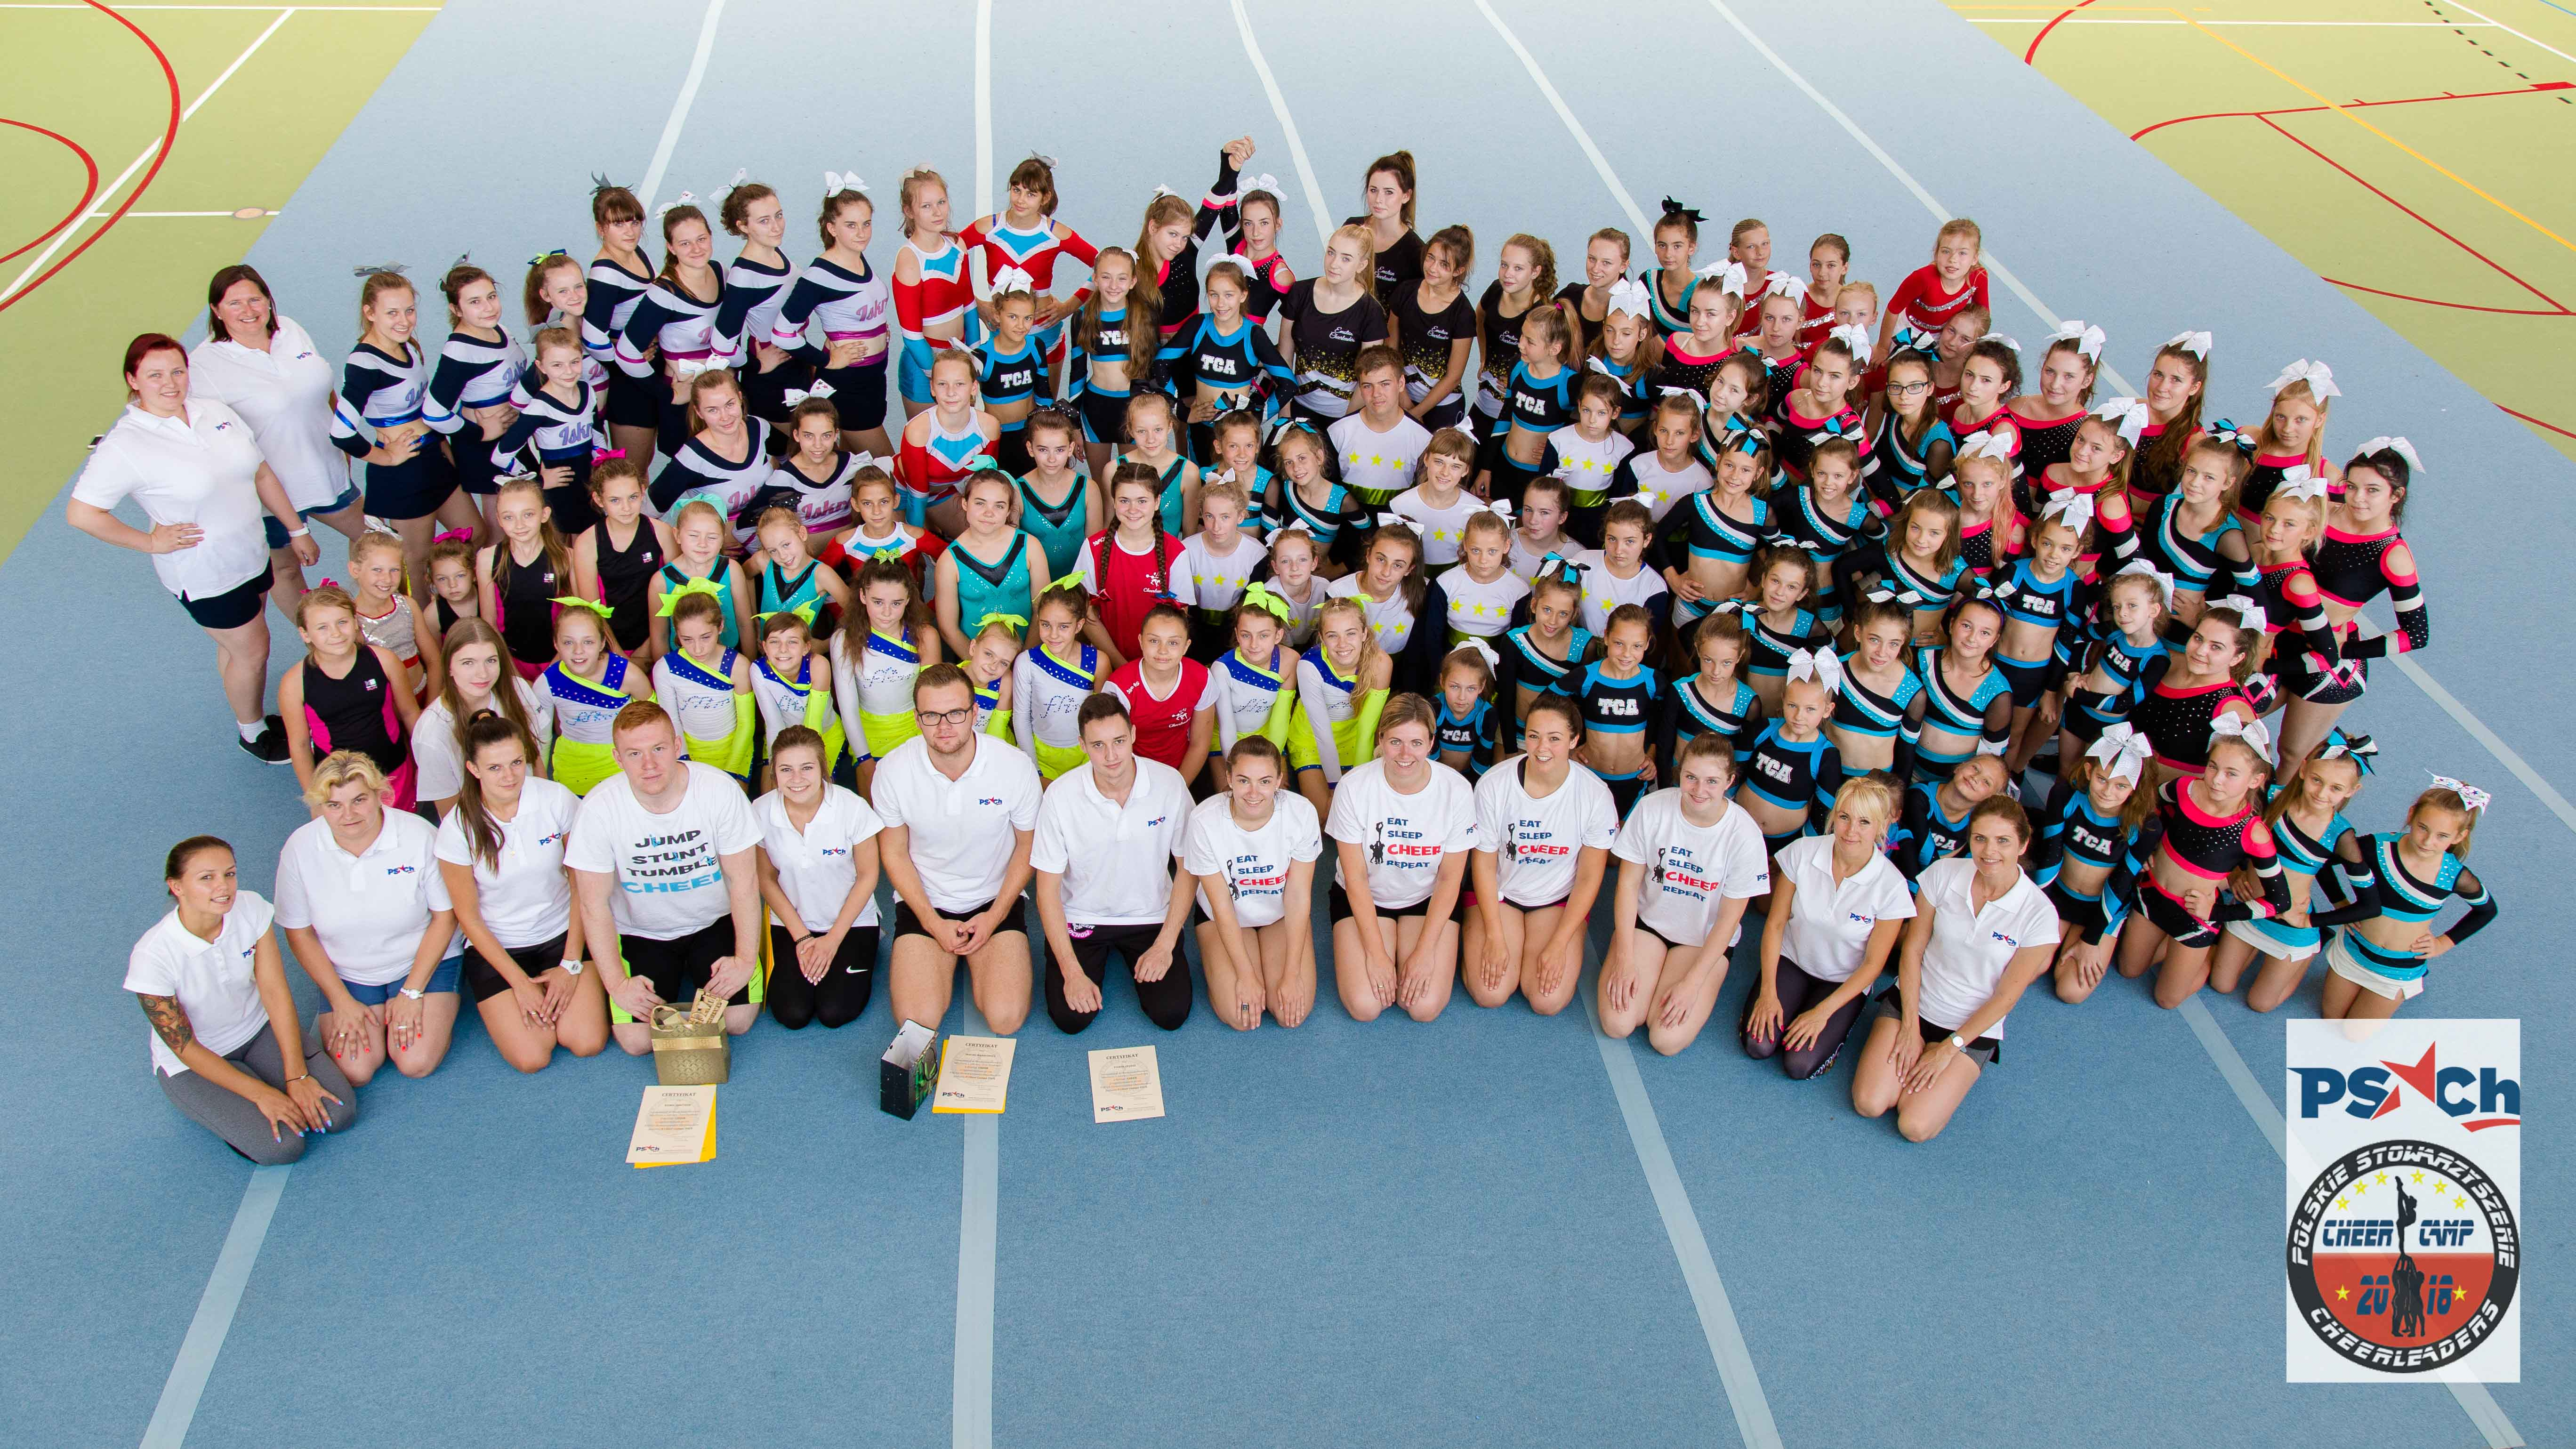 II Cheer Camp PSCh - Łochów 2018